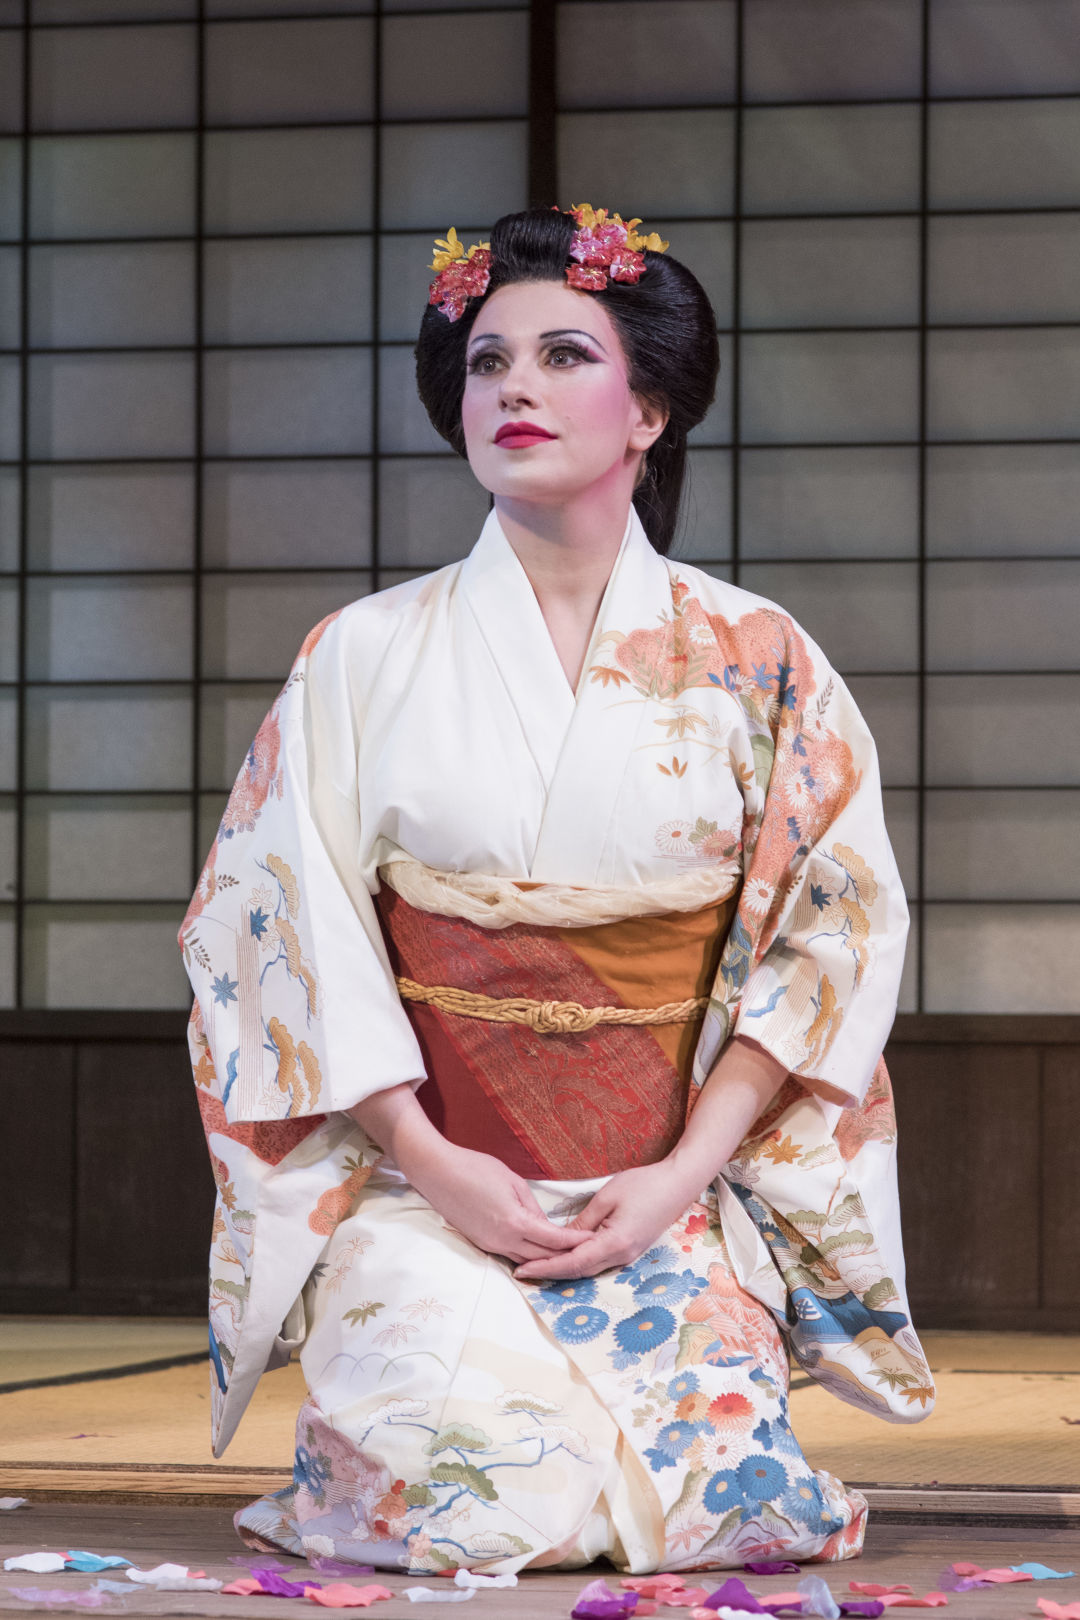 Joanna parisi in the title role of puccini s madama butterfly photo by rod millington ykgniw